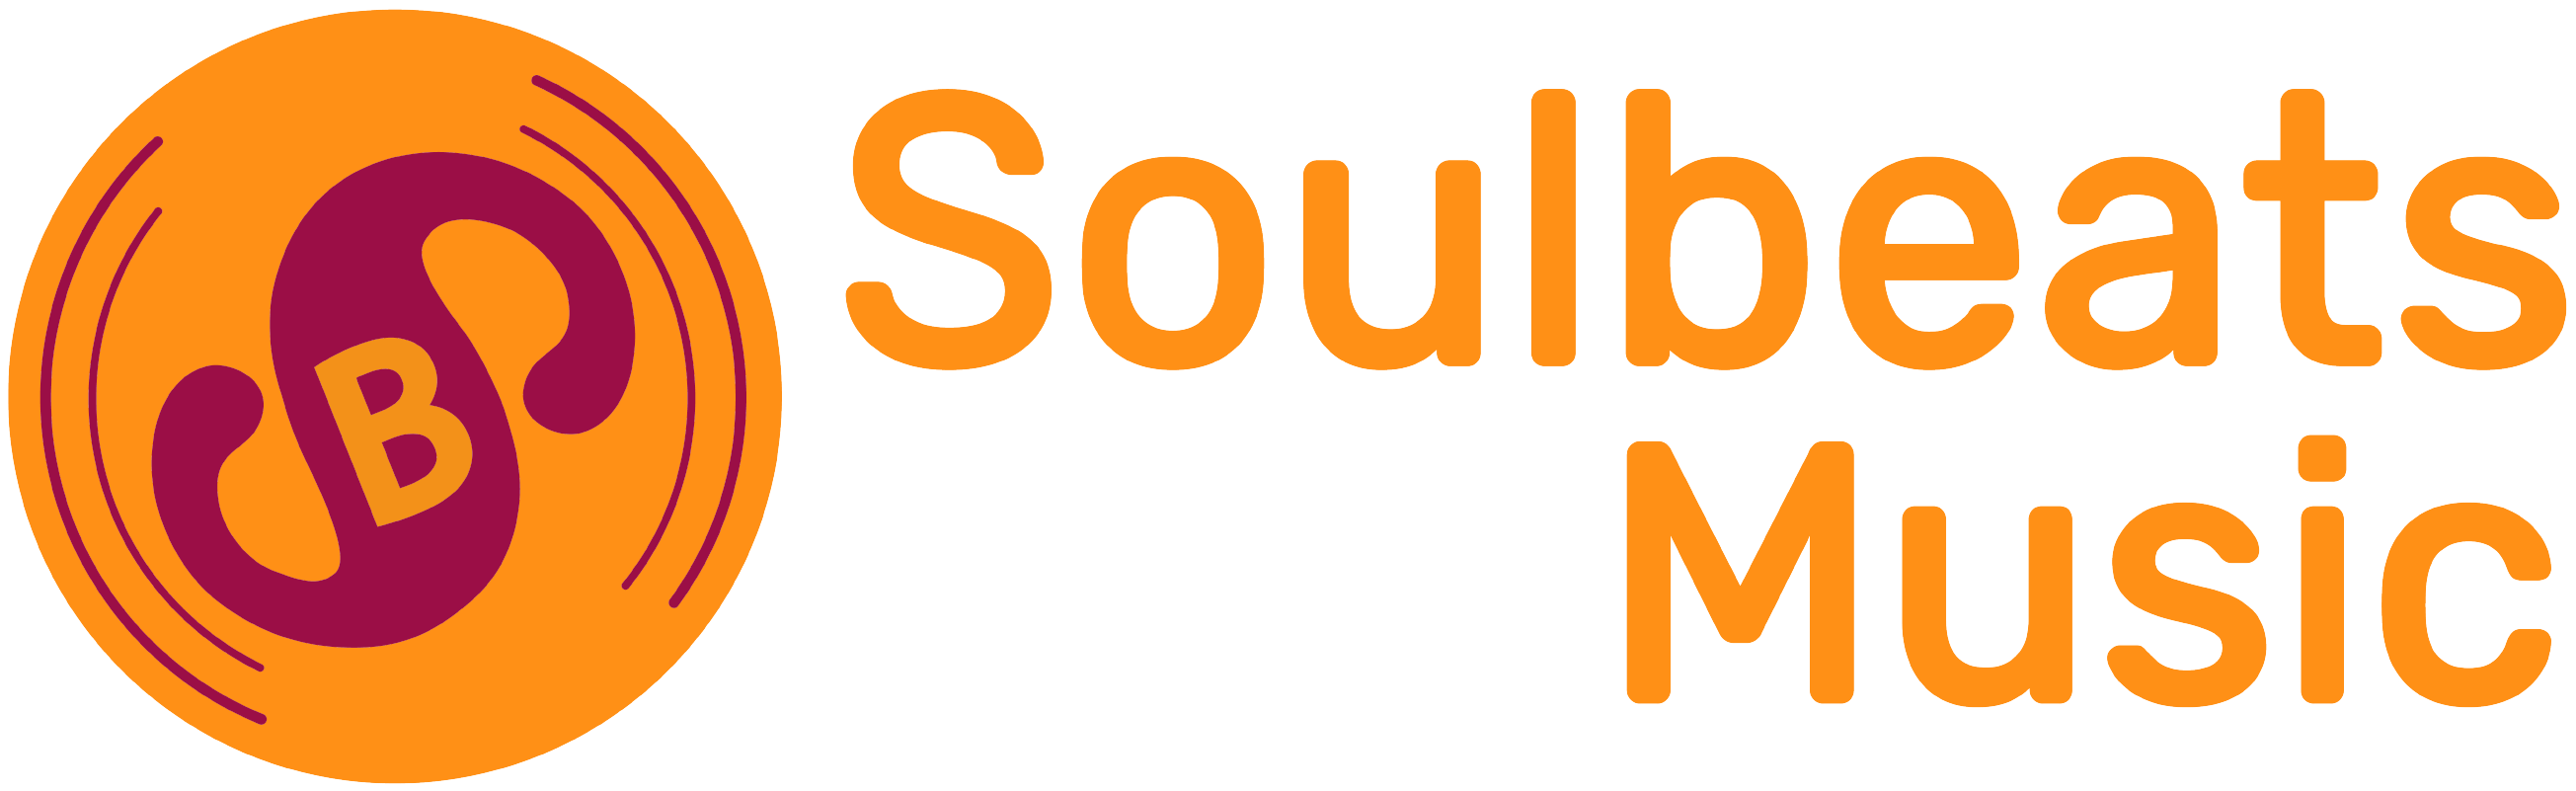 Soulbeats Music